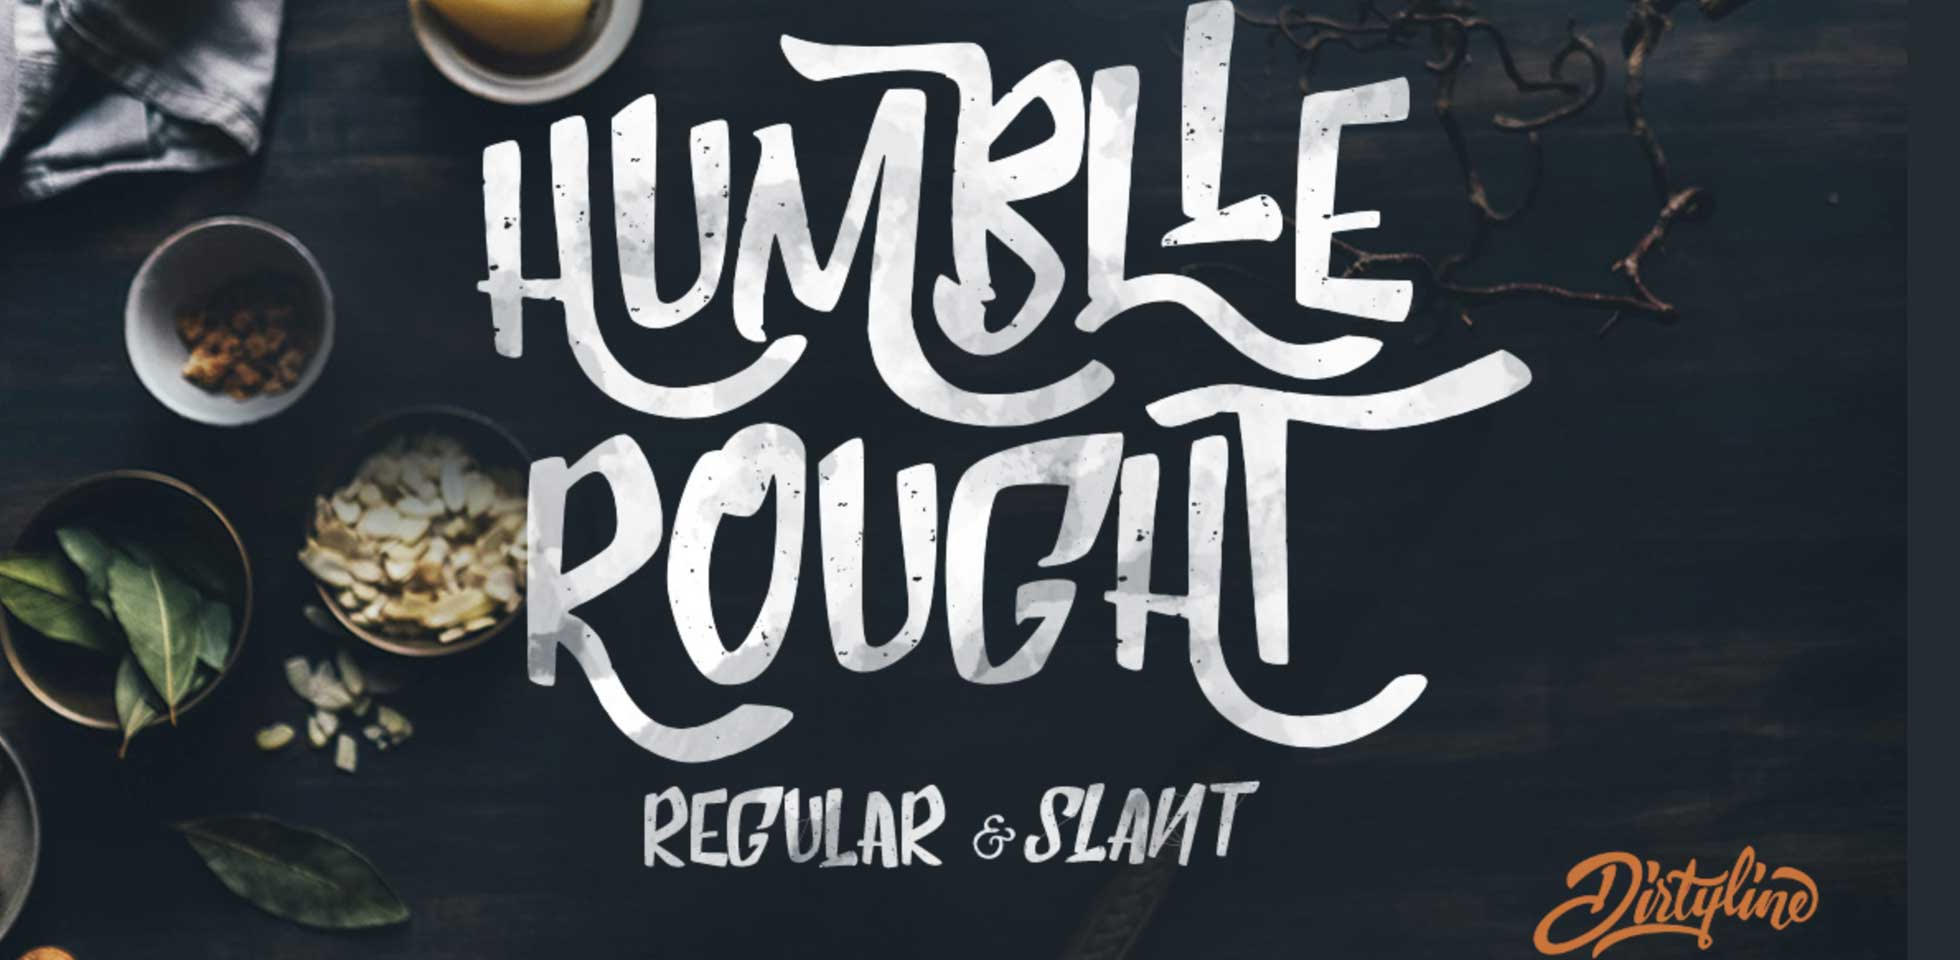 Free Download: Humblle Rought Font